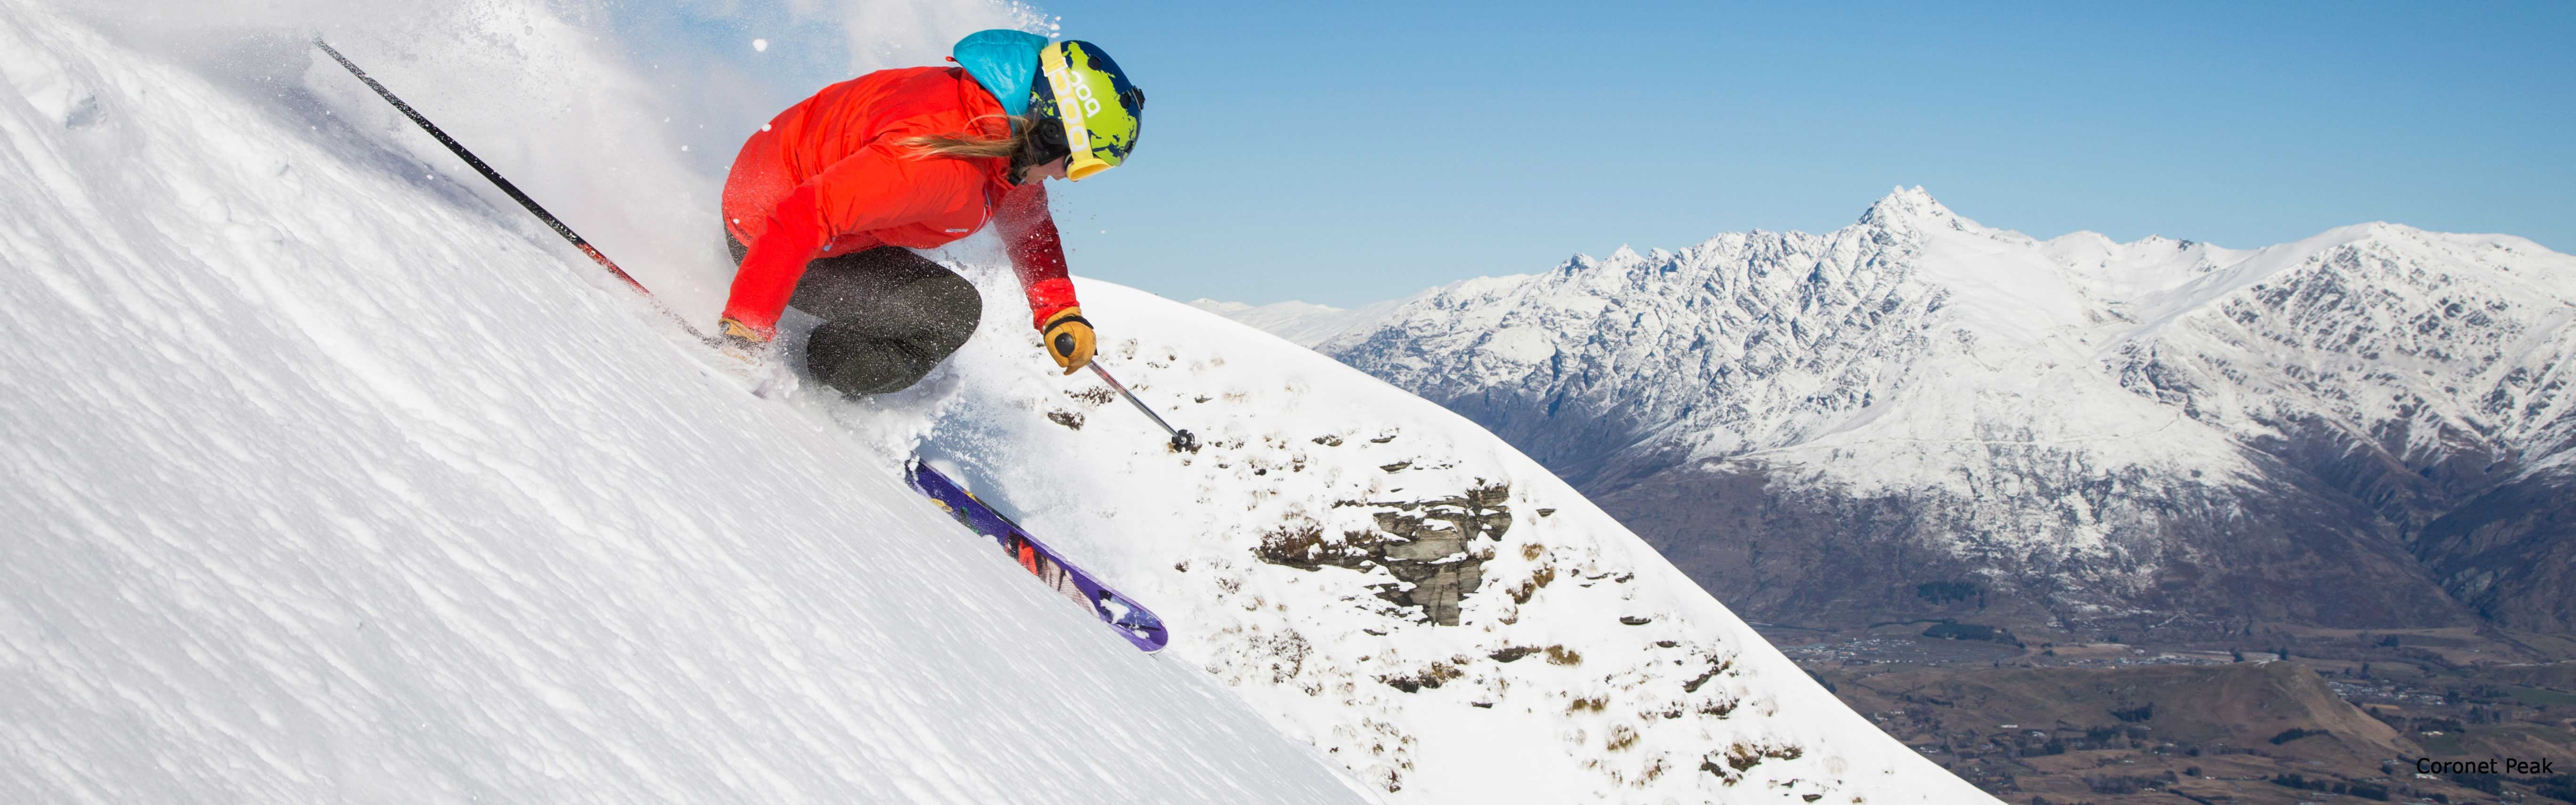 ALL INCLUSIVE, DISCOUNTED SKIING HOLIDAY PACKAGES